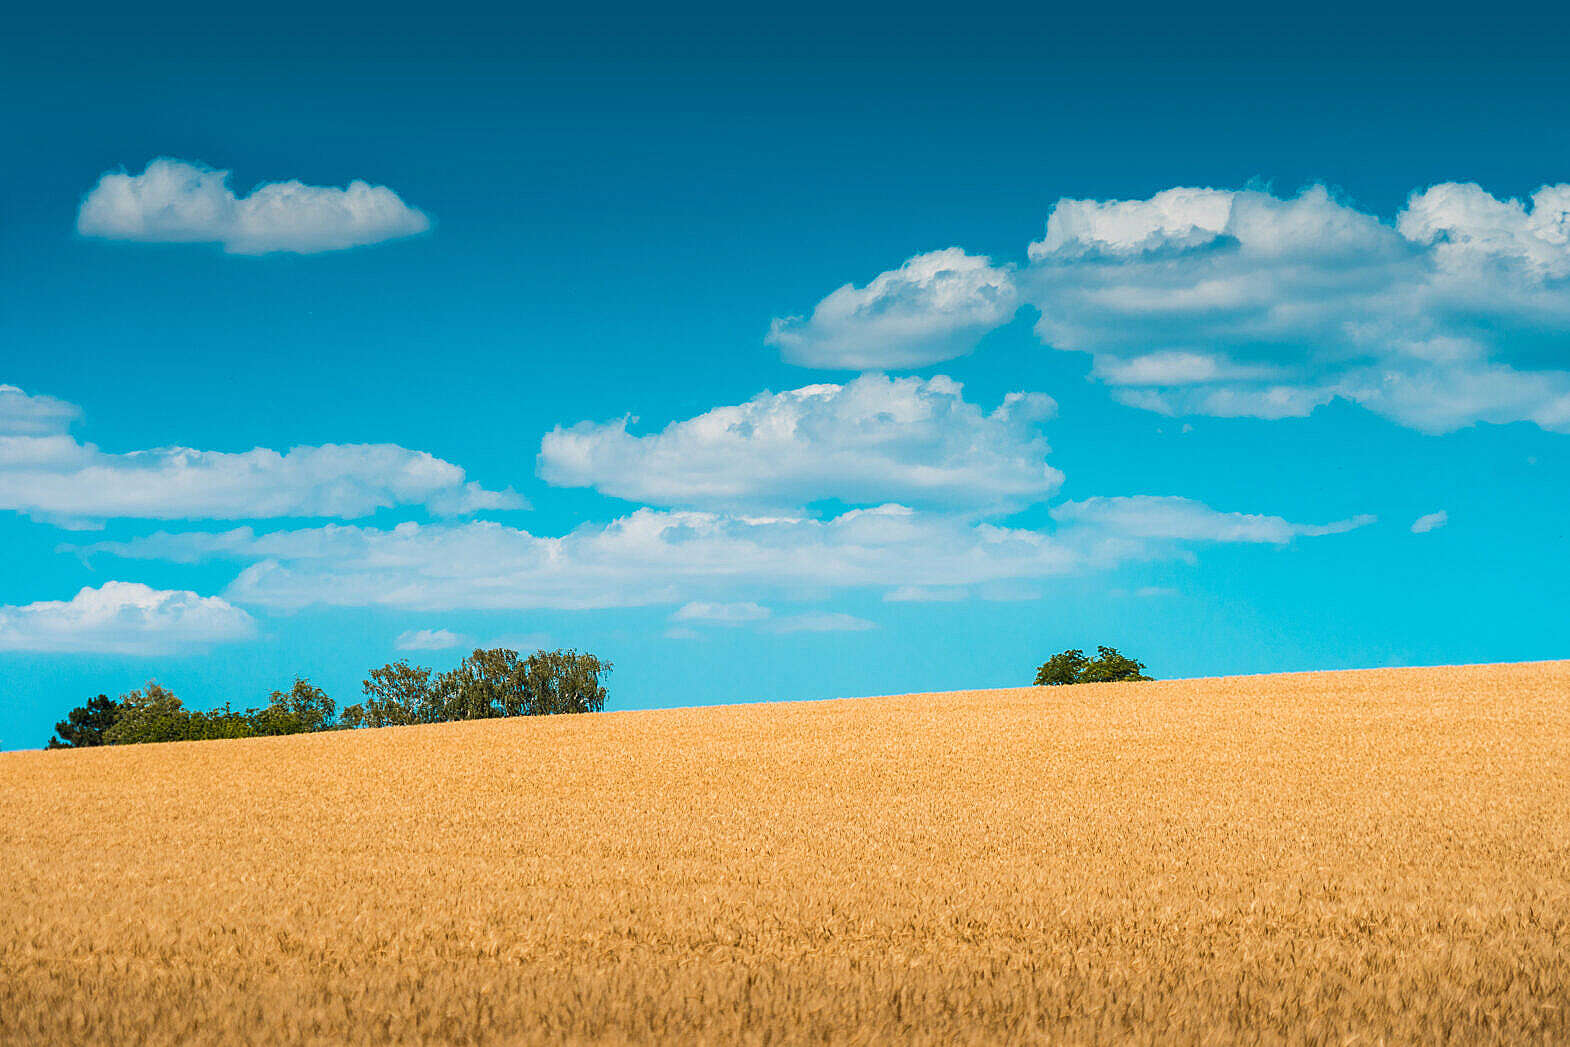 Wheat Field and Blue Sky Free Stock Photo Download